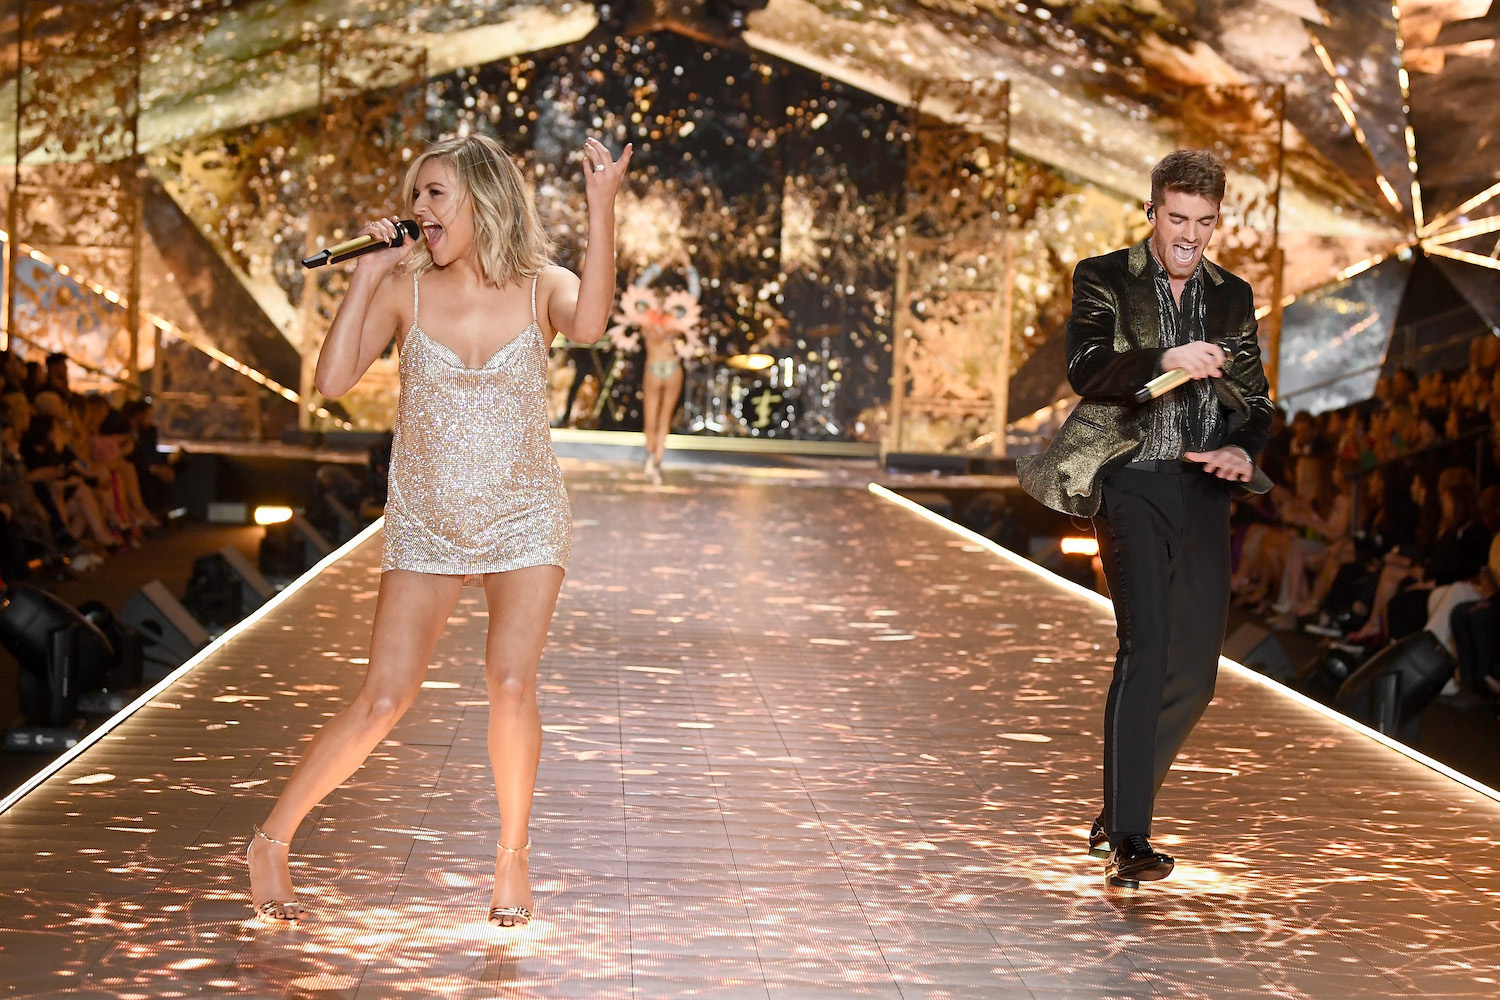 KELSEA BALLERINI & CHAINSMOKERS - VICTORIA'S SECRET FASHION SHOW